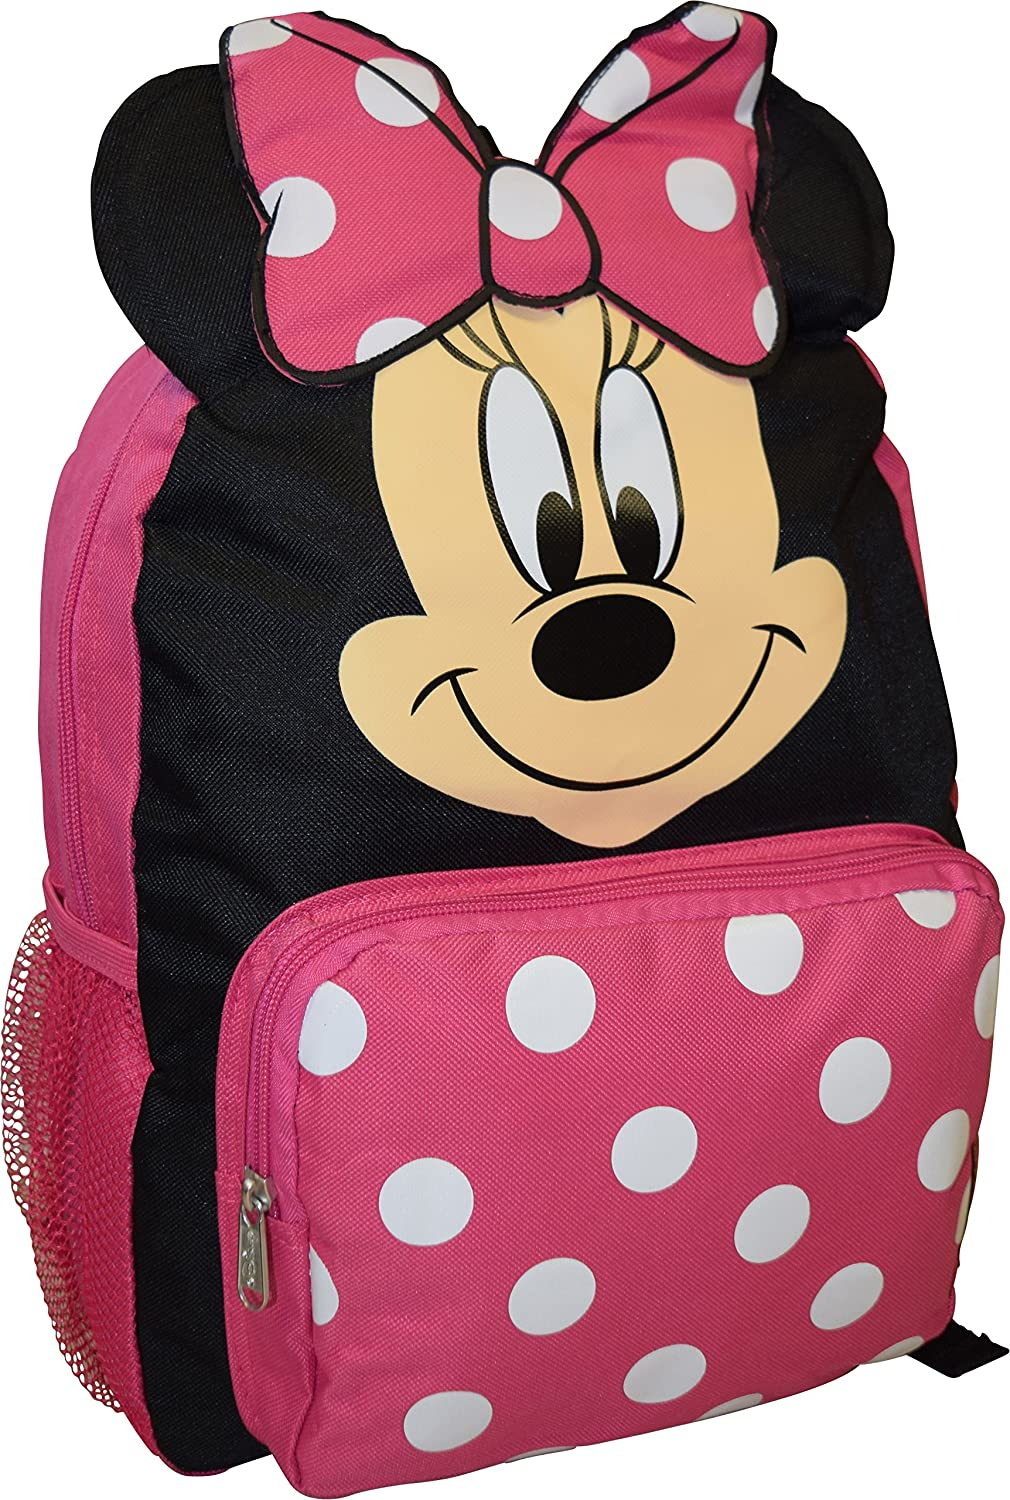 Minnie Mouse Big Face 14